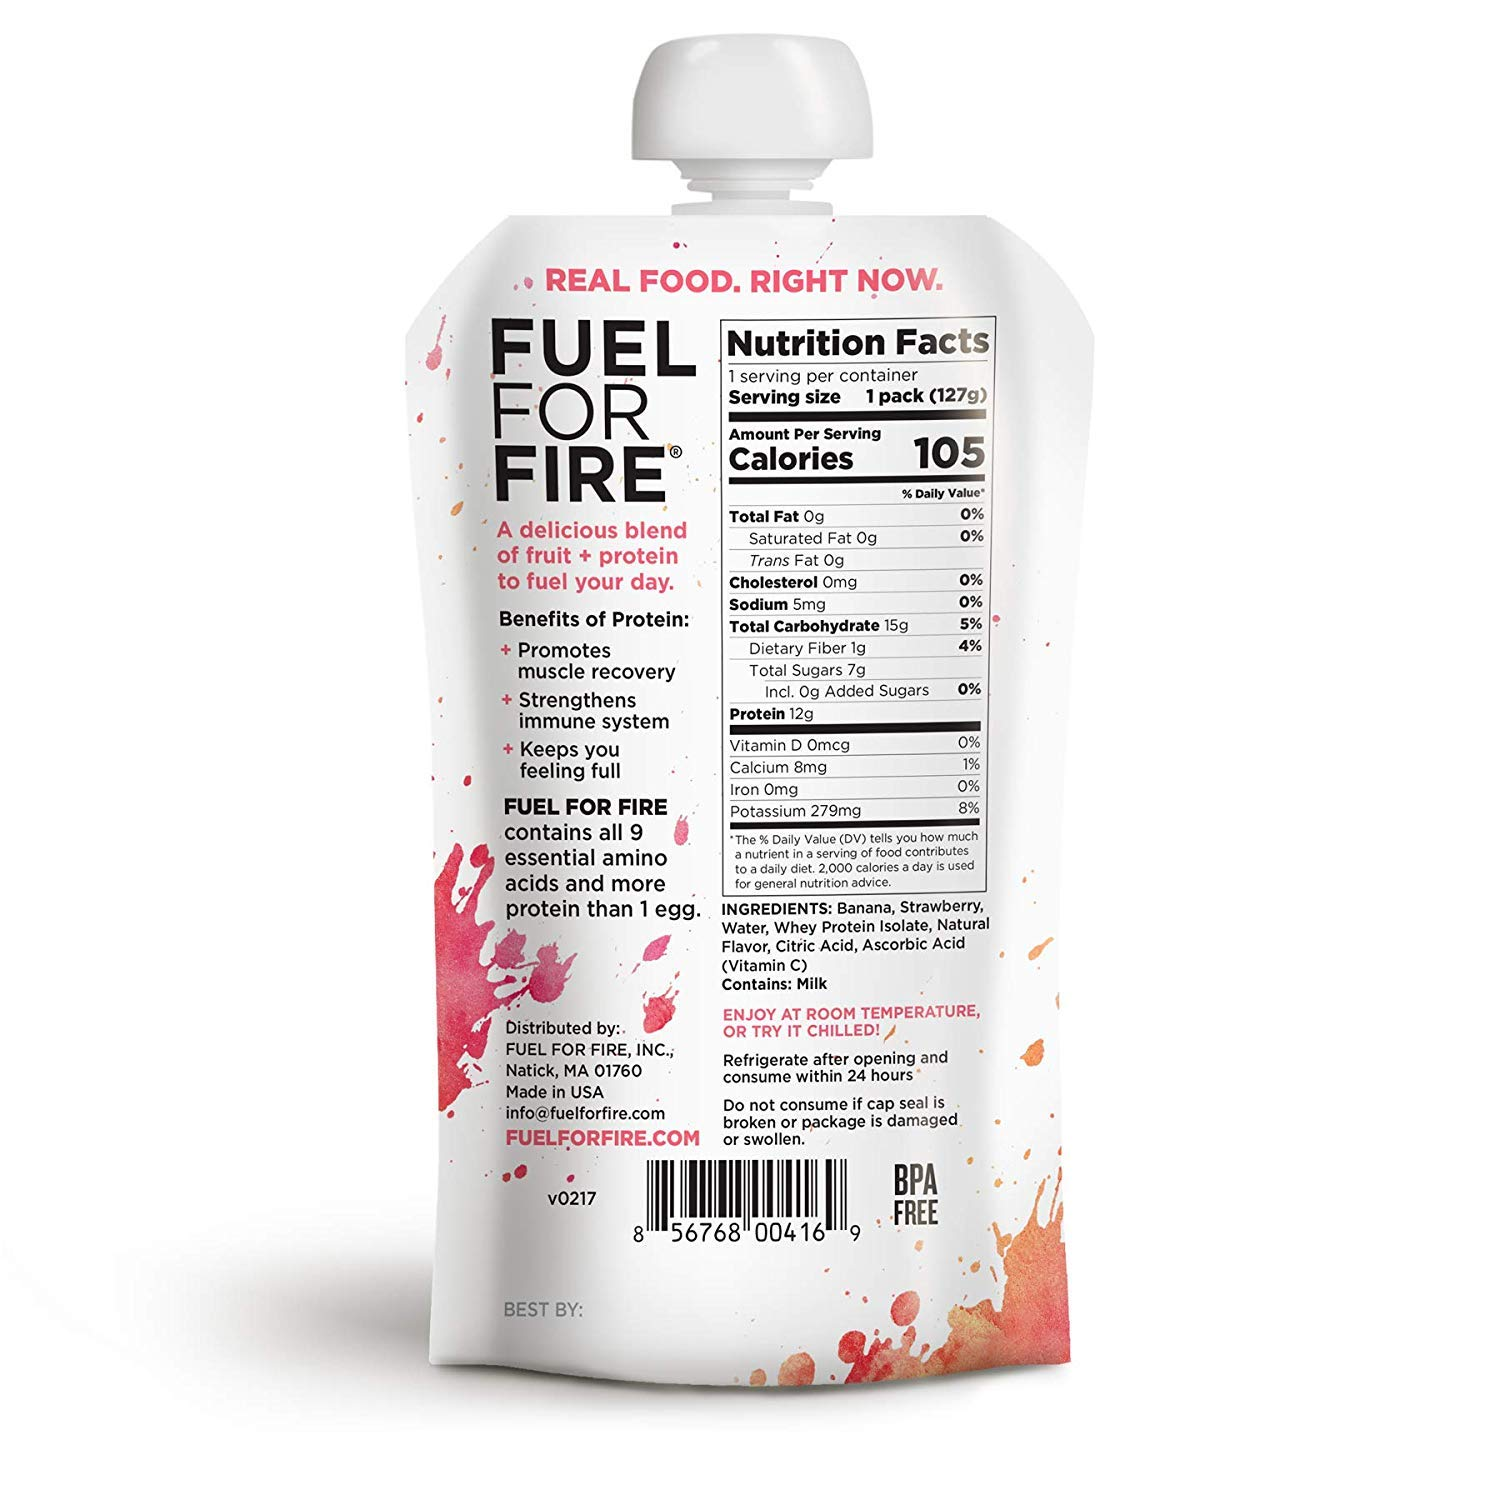 Fuel For Fire - Strawberry Banana (24 Pack) Fruit & Protein Smoothie Squeeze Pouch | Perfect for Workouts, Kids, Snacking - Gluten-Free, Soy-Free, Kosher (4.5 ounce pouches) by FUEL FOR FIRE